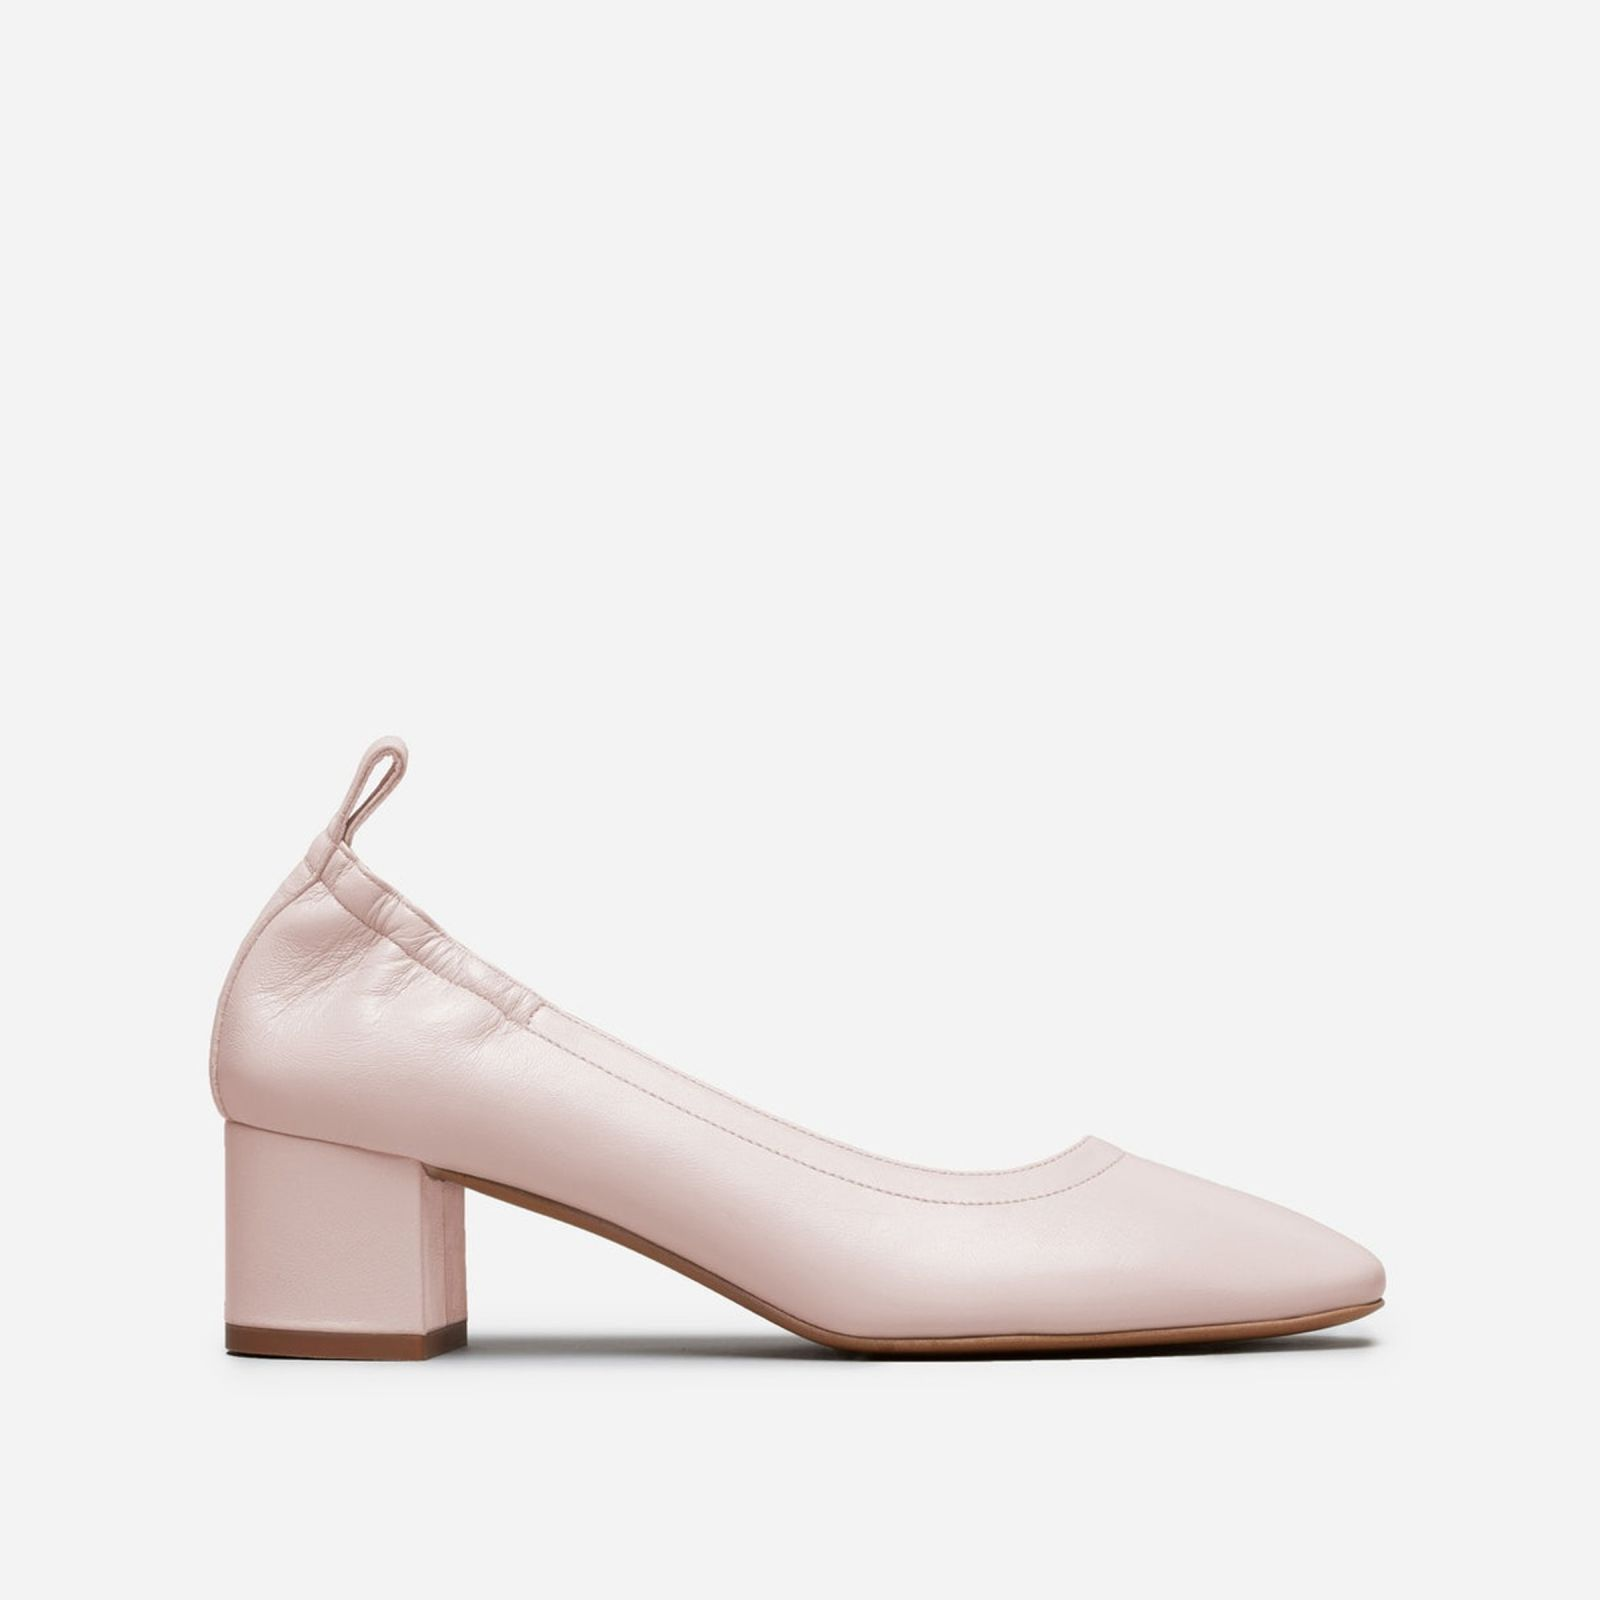 women's leather block heel pump by everlane in pale rose, size 11